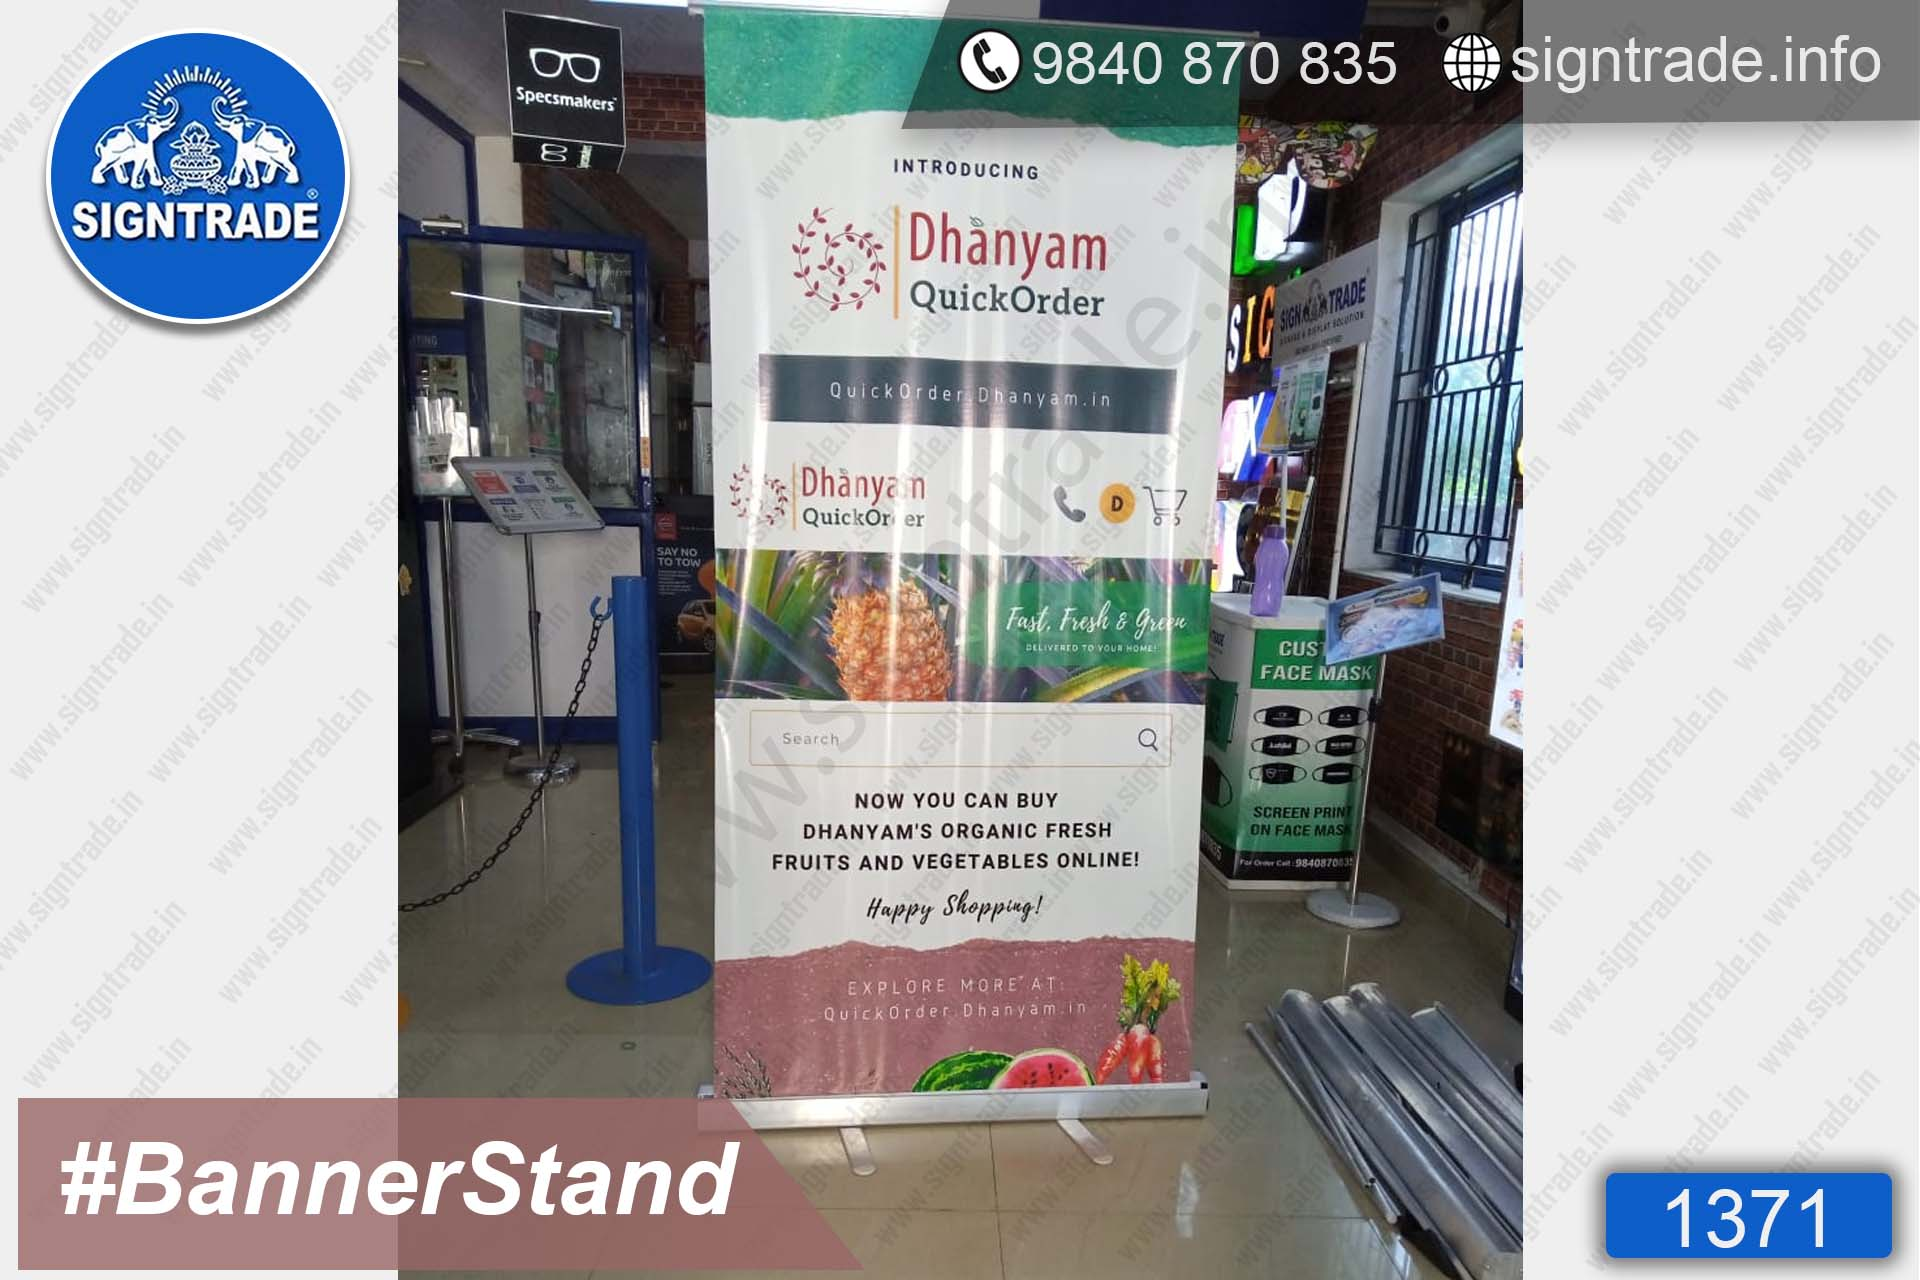 Dhanyam - Quick Order - 1371, Retractable Banner, Roll Up Banner Stand, Banner Stand, Roll Up Banner, Standee, Promotional Standee, Promotional Roll Up Standee, Promo Standee